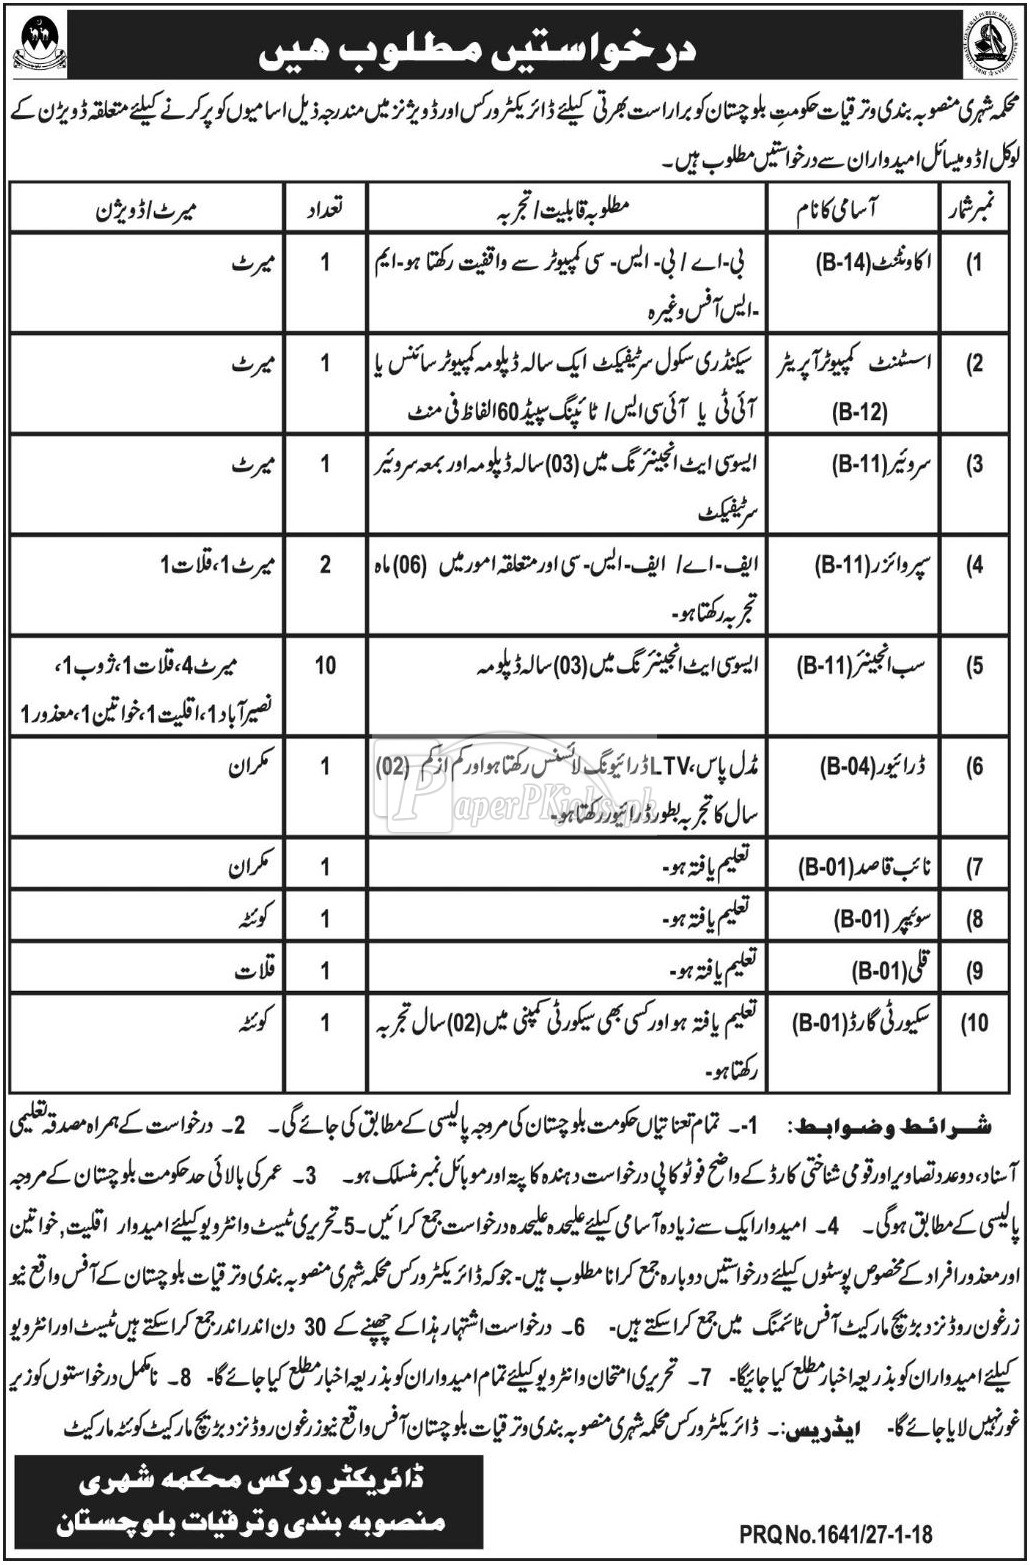 Urban Planning & Development Department Balochistan Jobs 2018